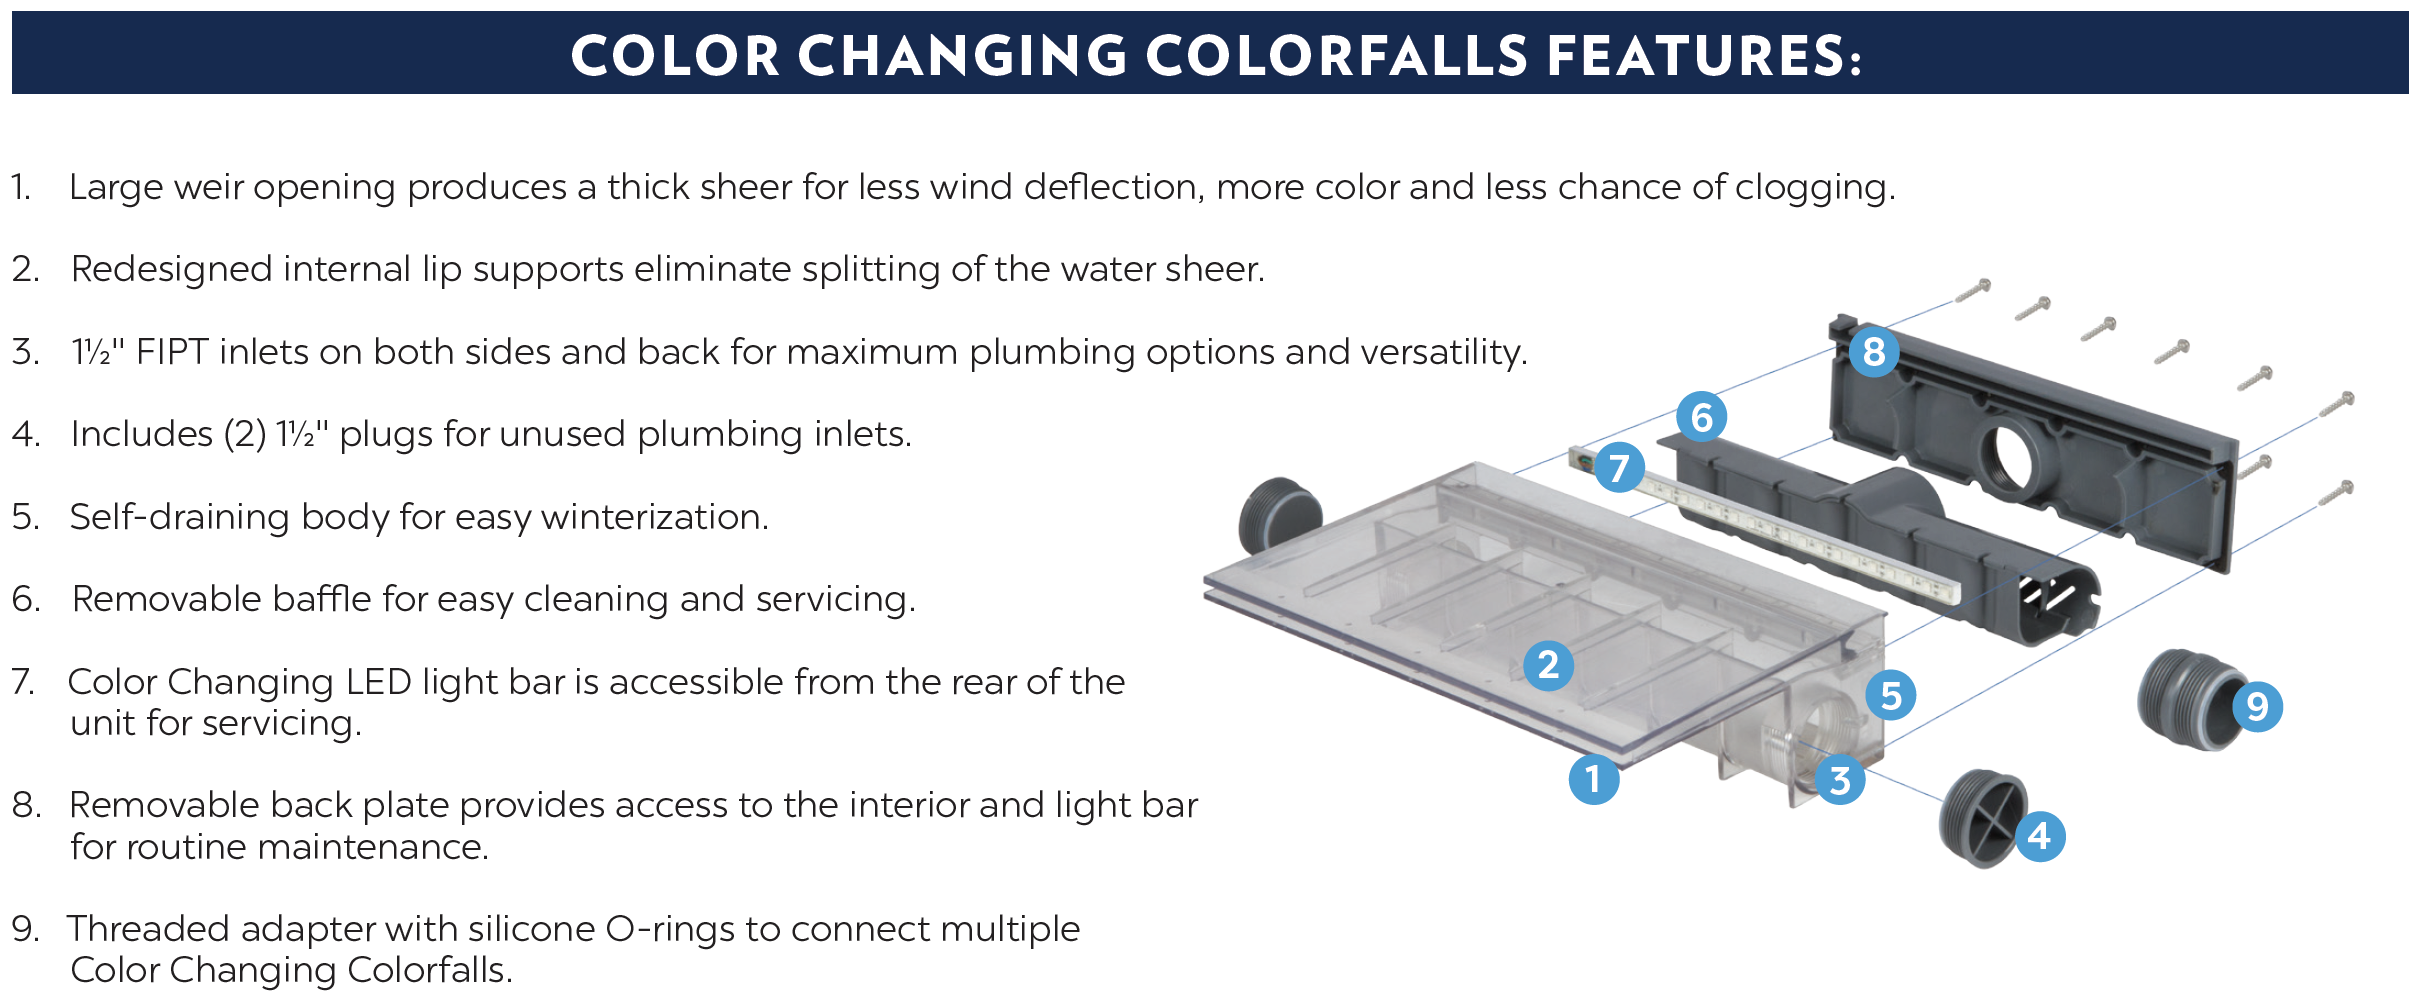 Color Changing Colorfalls Atlantic Water Gardens Series Parallel Wiring On Electrical Multiple Outlets Pro Fountain Basin Features